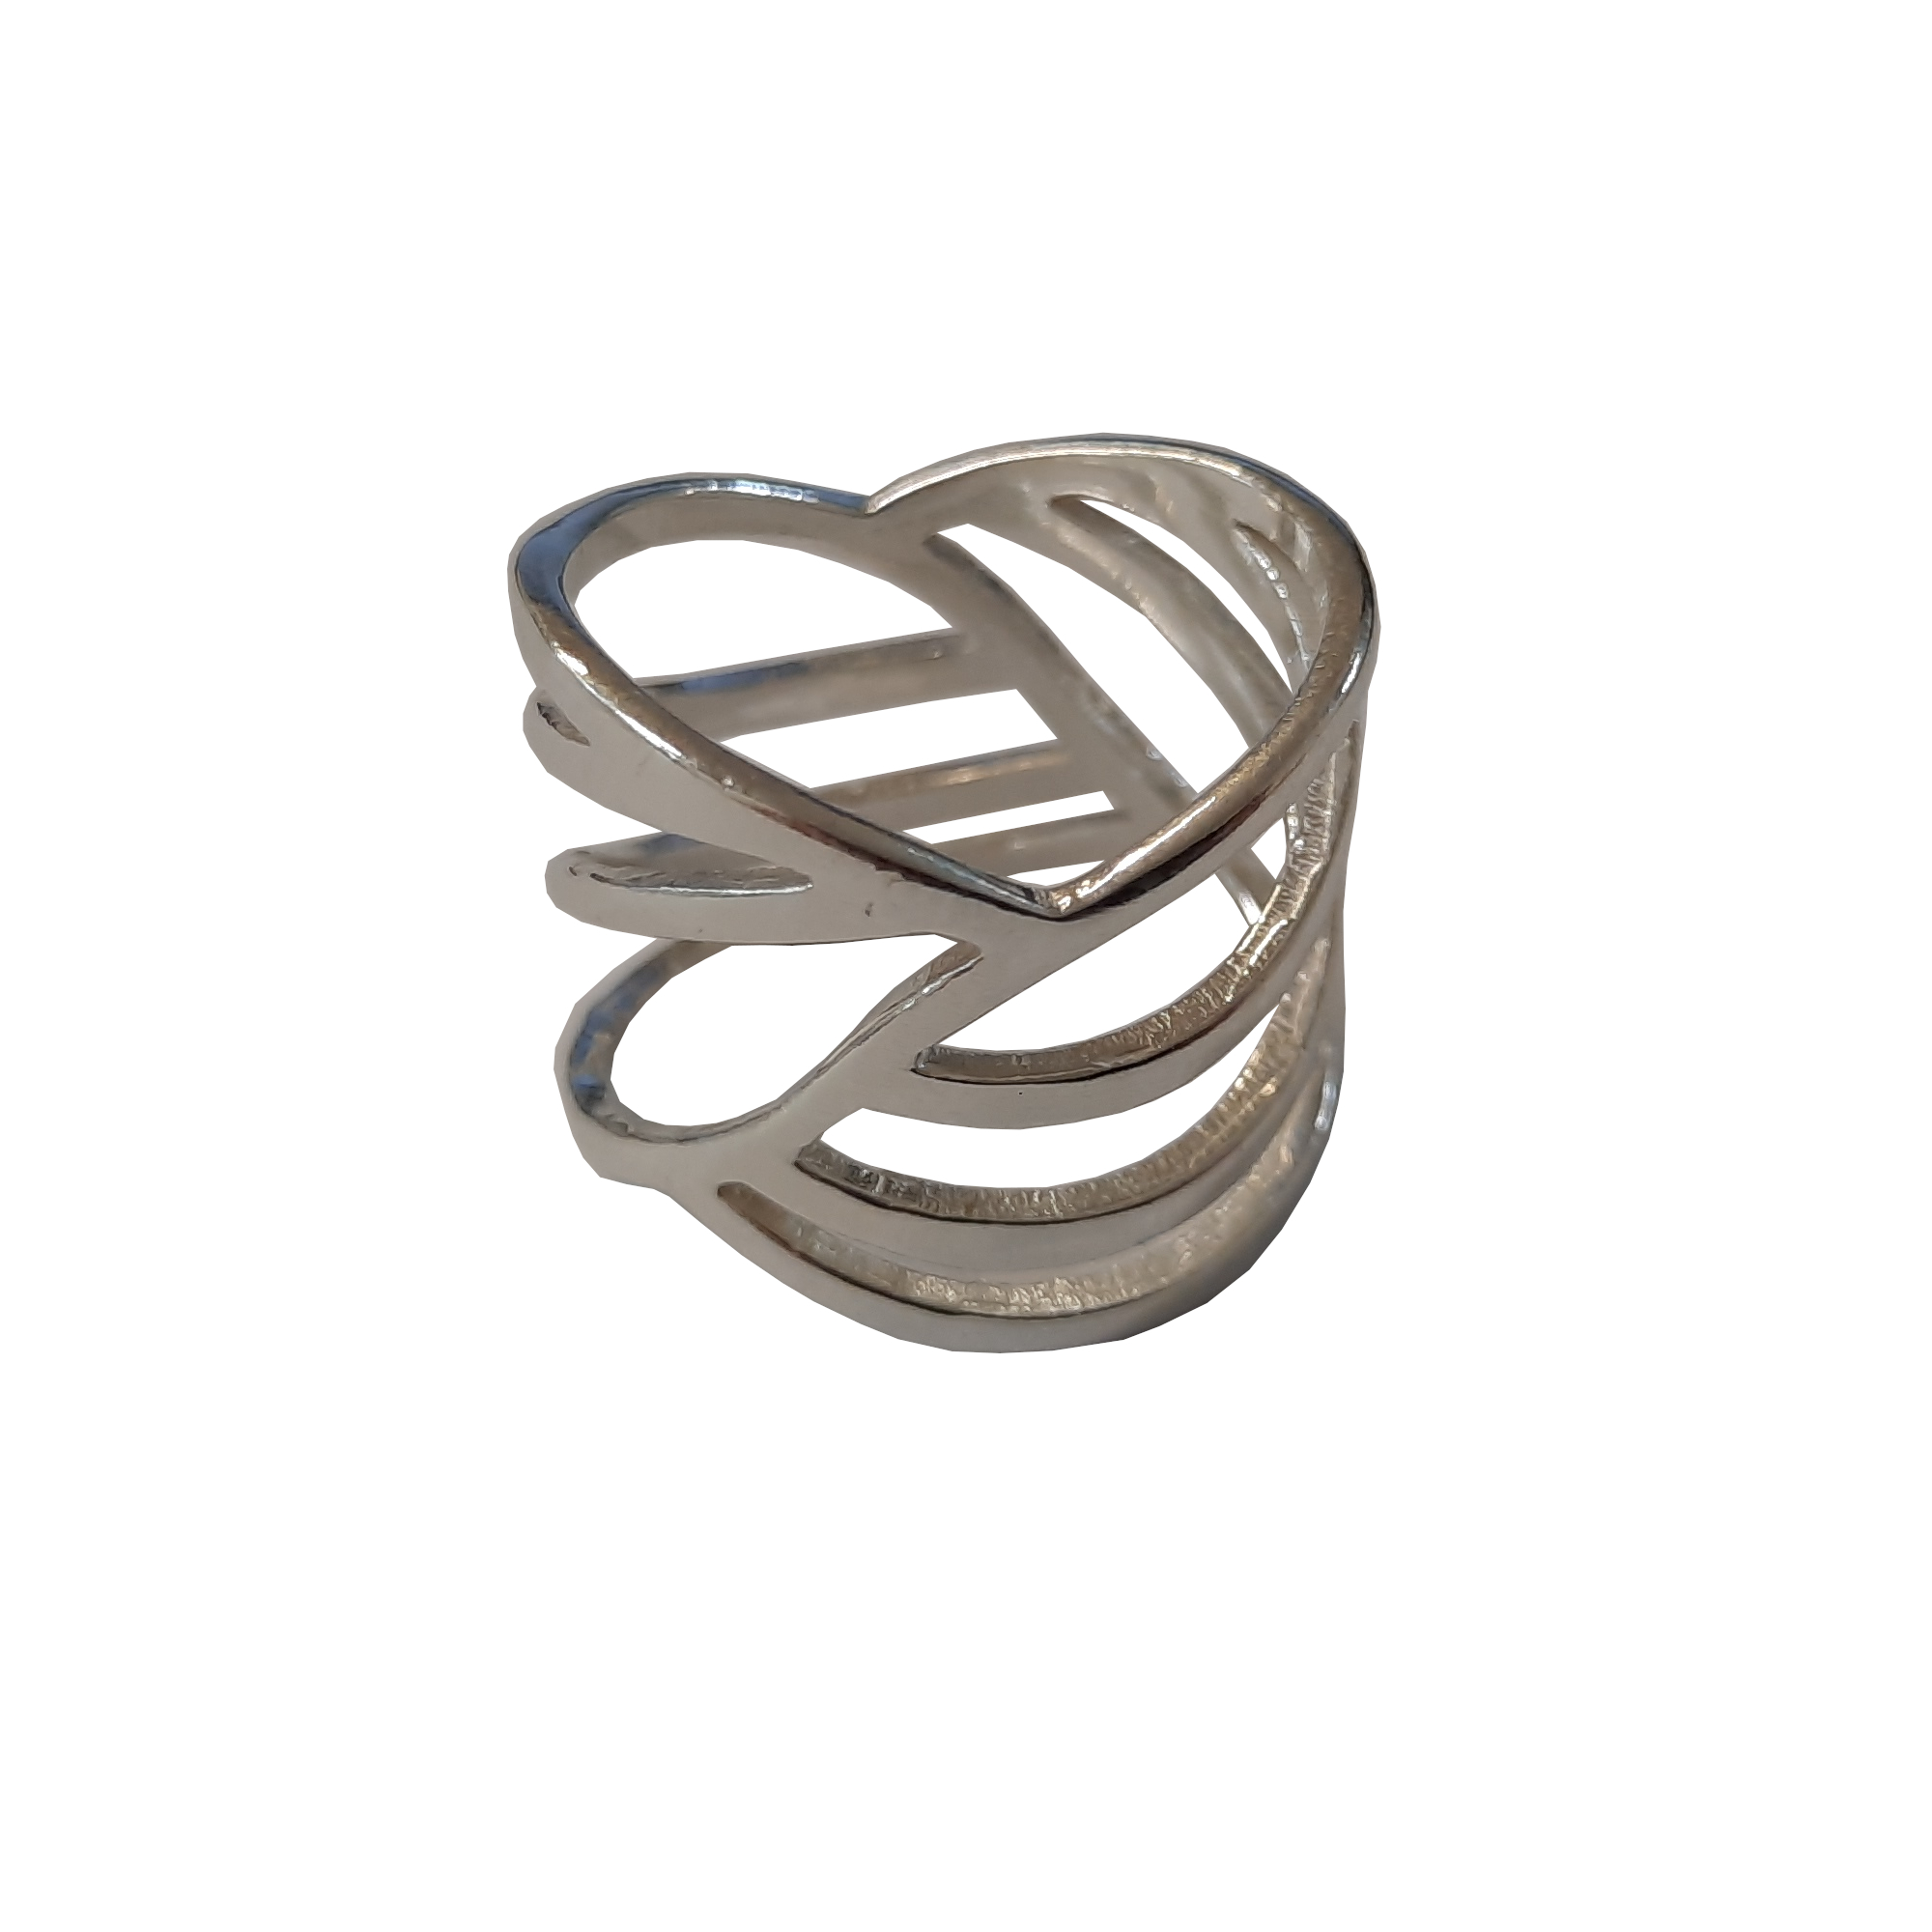 Silver ring - R002196